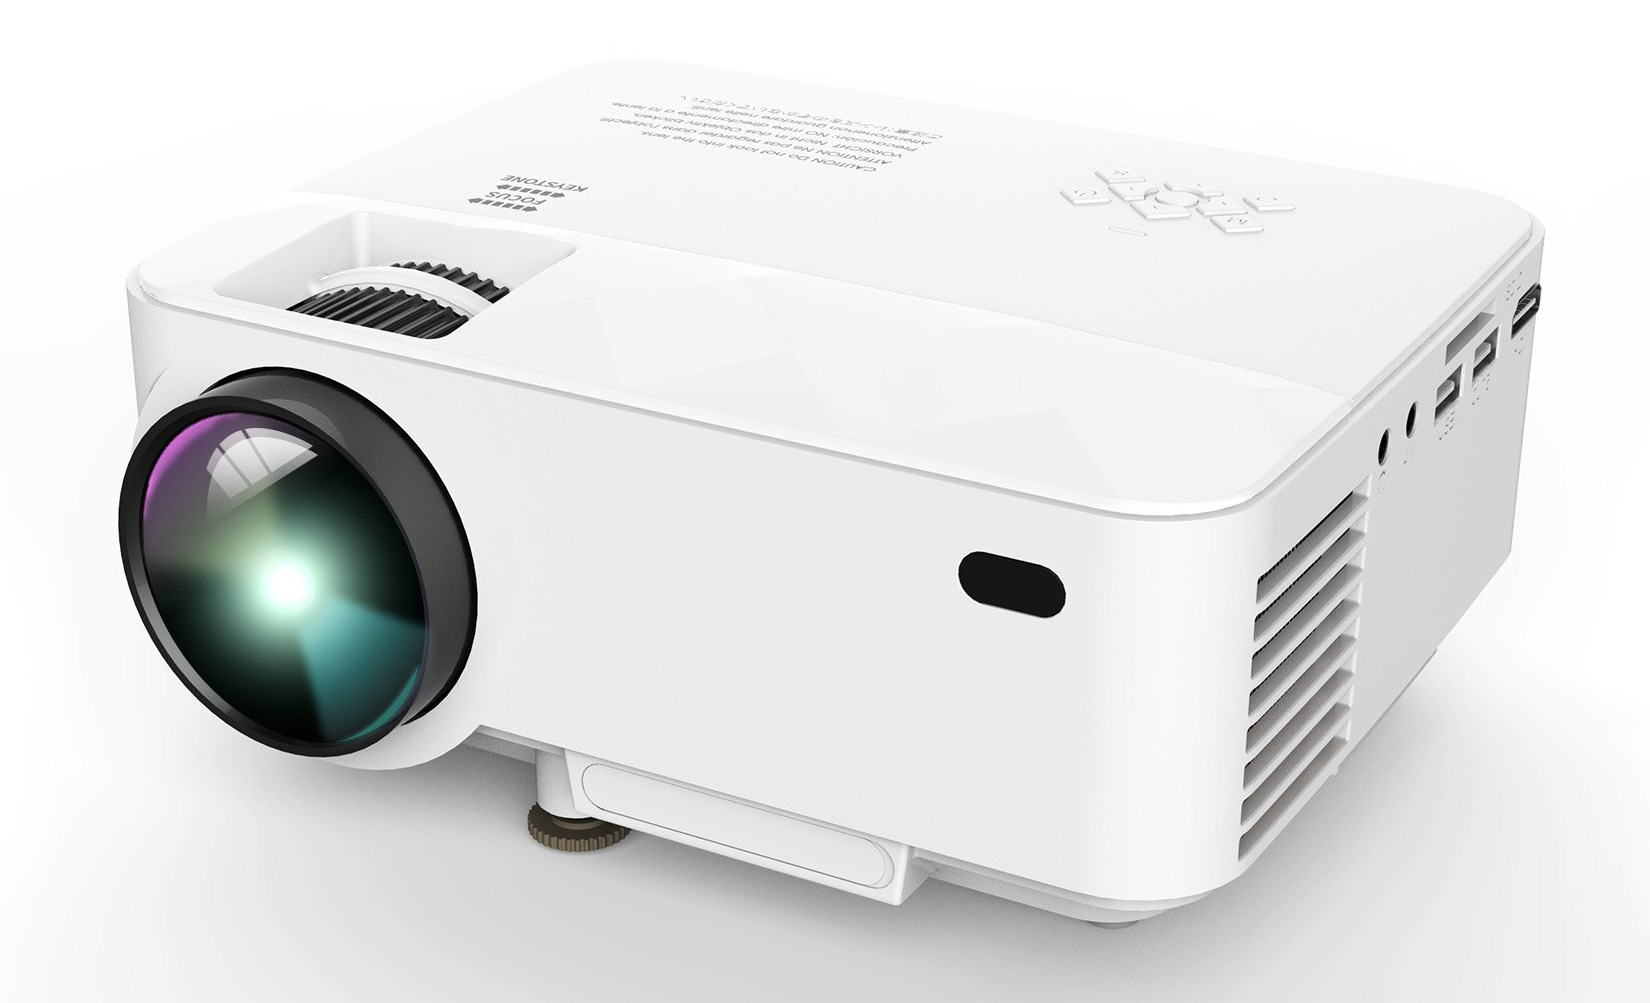 Dbpower t20 portable mini led projector review for Small video projectors reviews